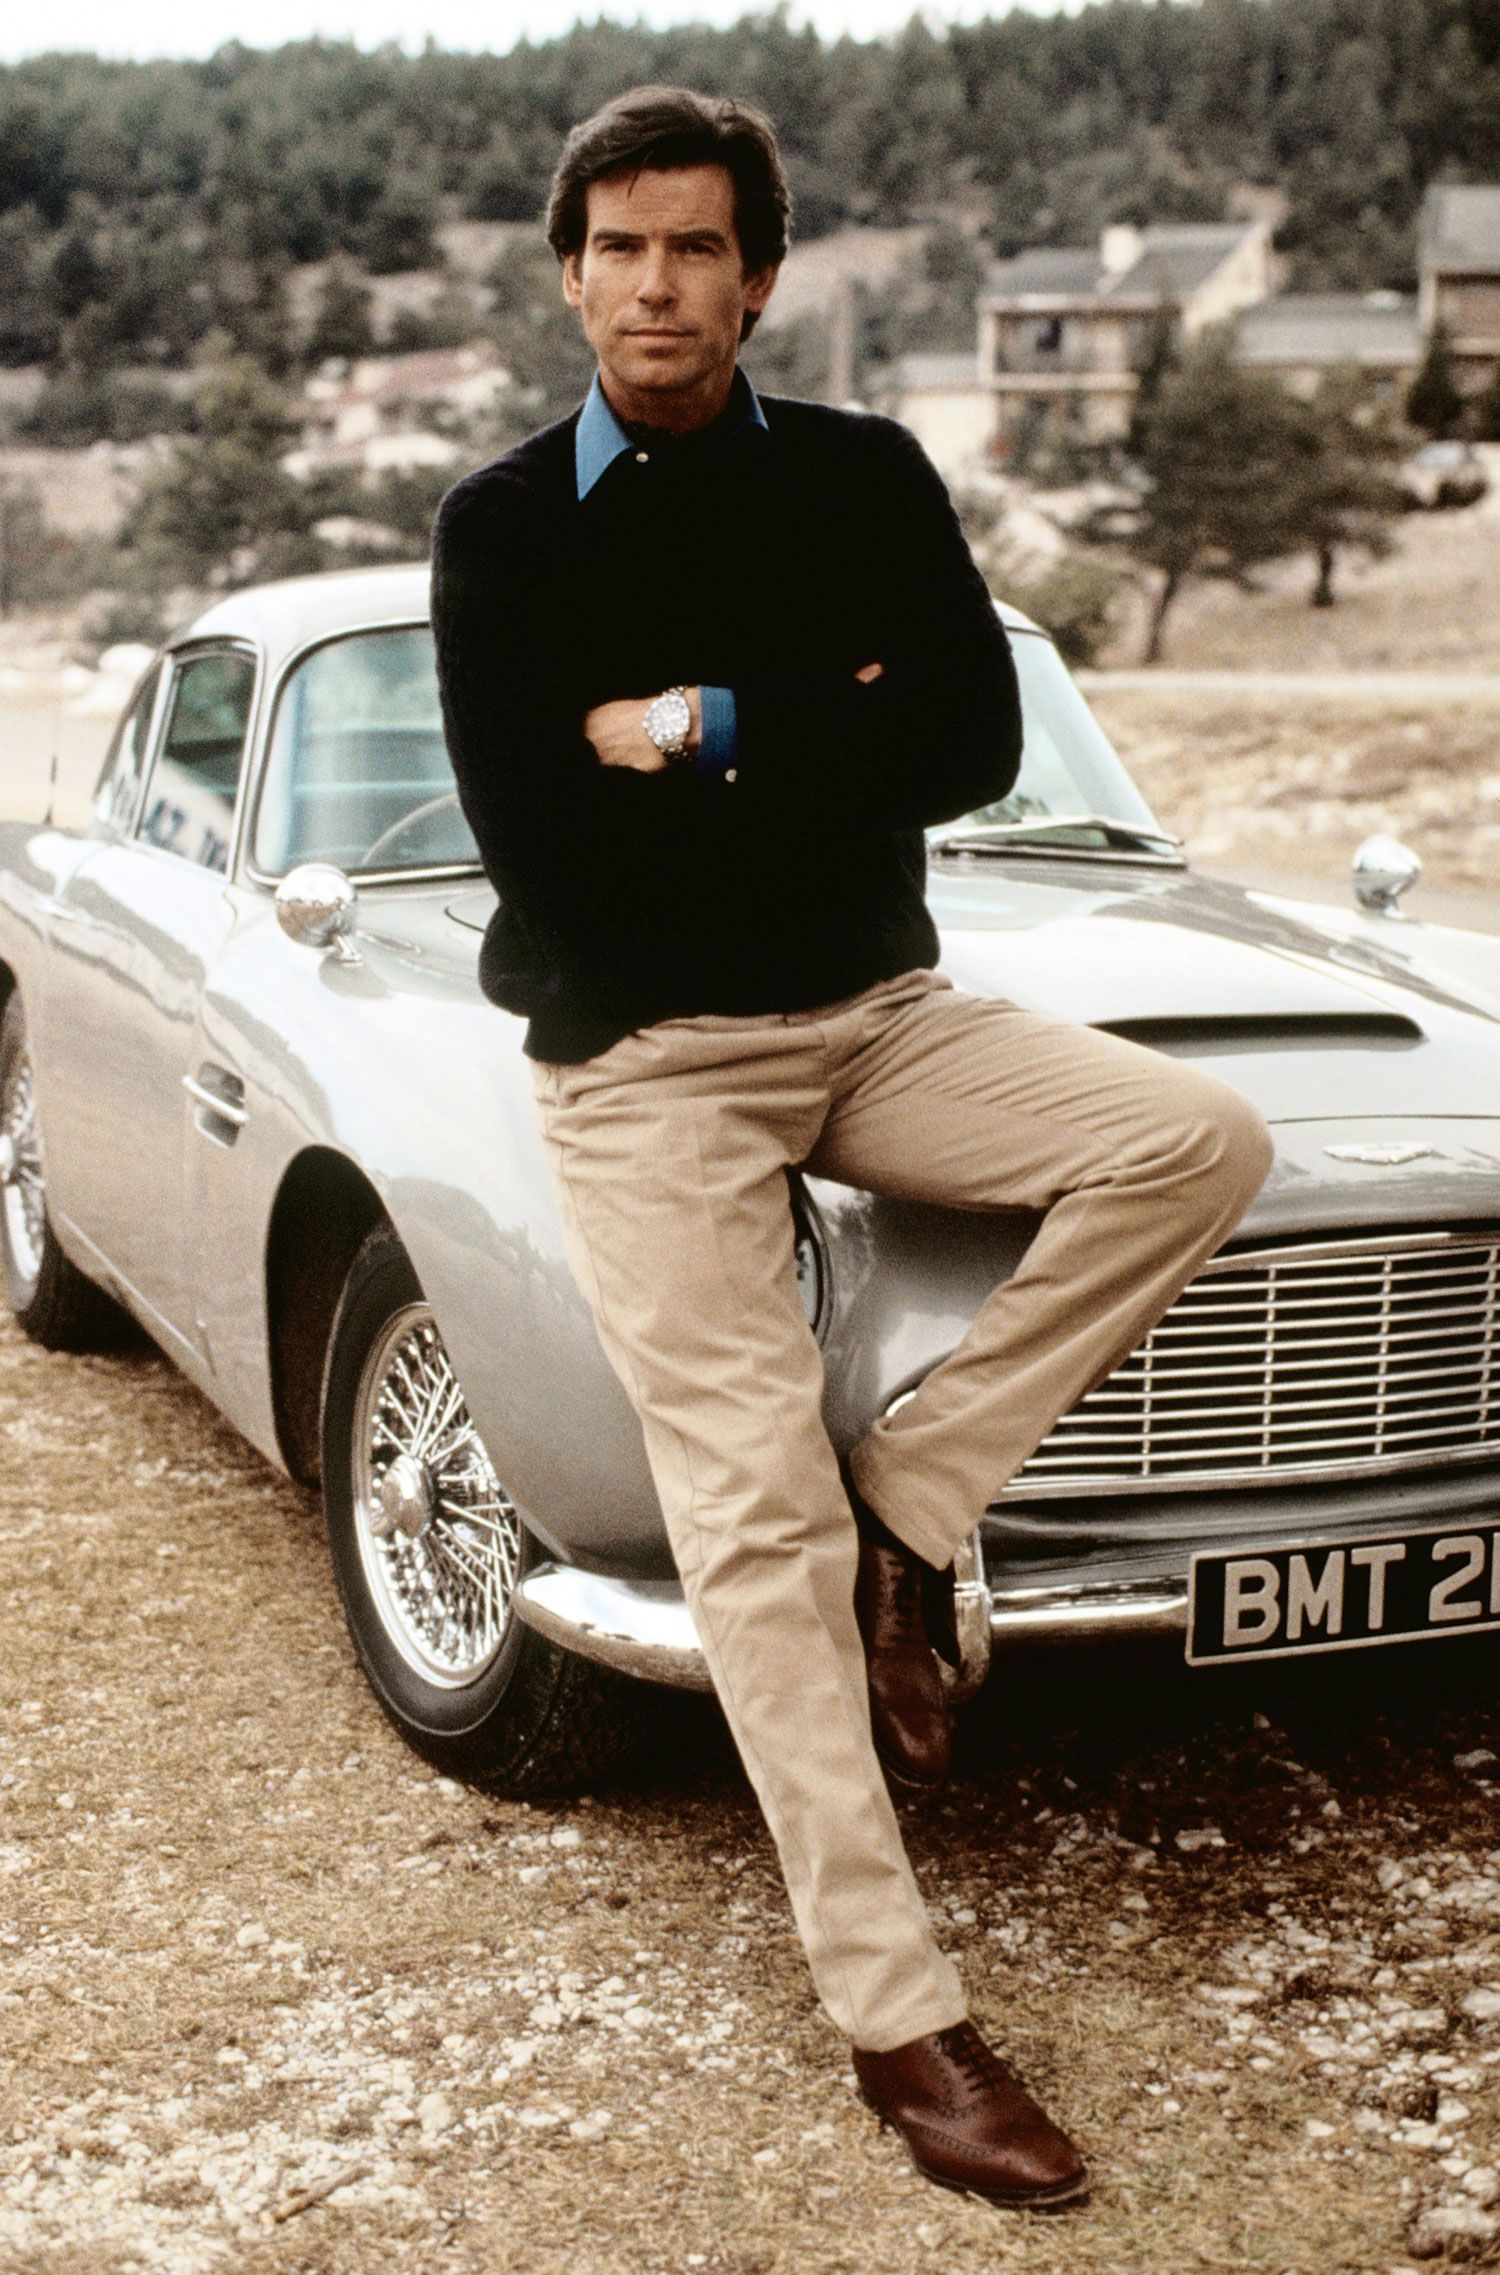 """Goldeneye (1995) – Aston Martin DB5 - The Driver: An Irishman! Pierce Brosnan's nervous debut gave us a very handsome, albeit quite stiff, Bond. His stunts (hijacking a free-falling plane to safety) were excellent, though.The Car: One of the best uses of the DB5 in the whole series: racing a Famke Janssen-driven Ferrari F355 down 2-lane Italian switchbacks. Chalk the ability of a 1964 Aston to stay abreast of a 1995 Ferrari up to movie magic; in reality, they aren't even close.The Evolutionary Leap: The franchise's achievement of balance: young star, old car, and just enough old chestnuts (""""Let's make the investigation quite thorough,"""" from Bond to his psychologist) to keep fans happy."""